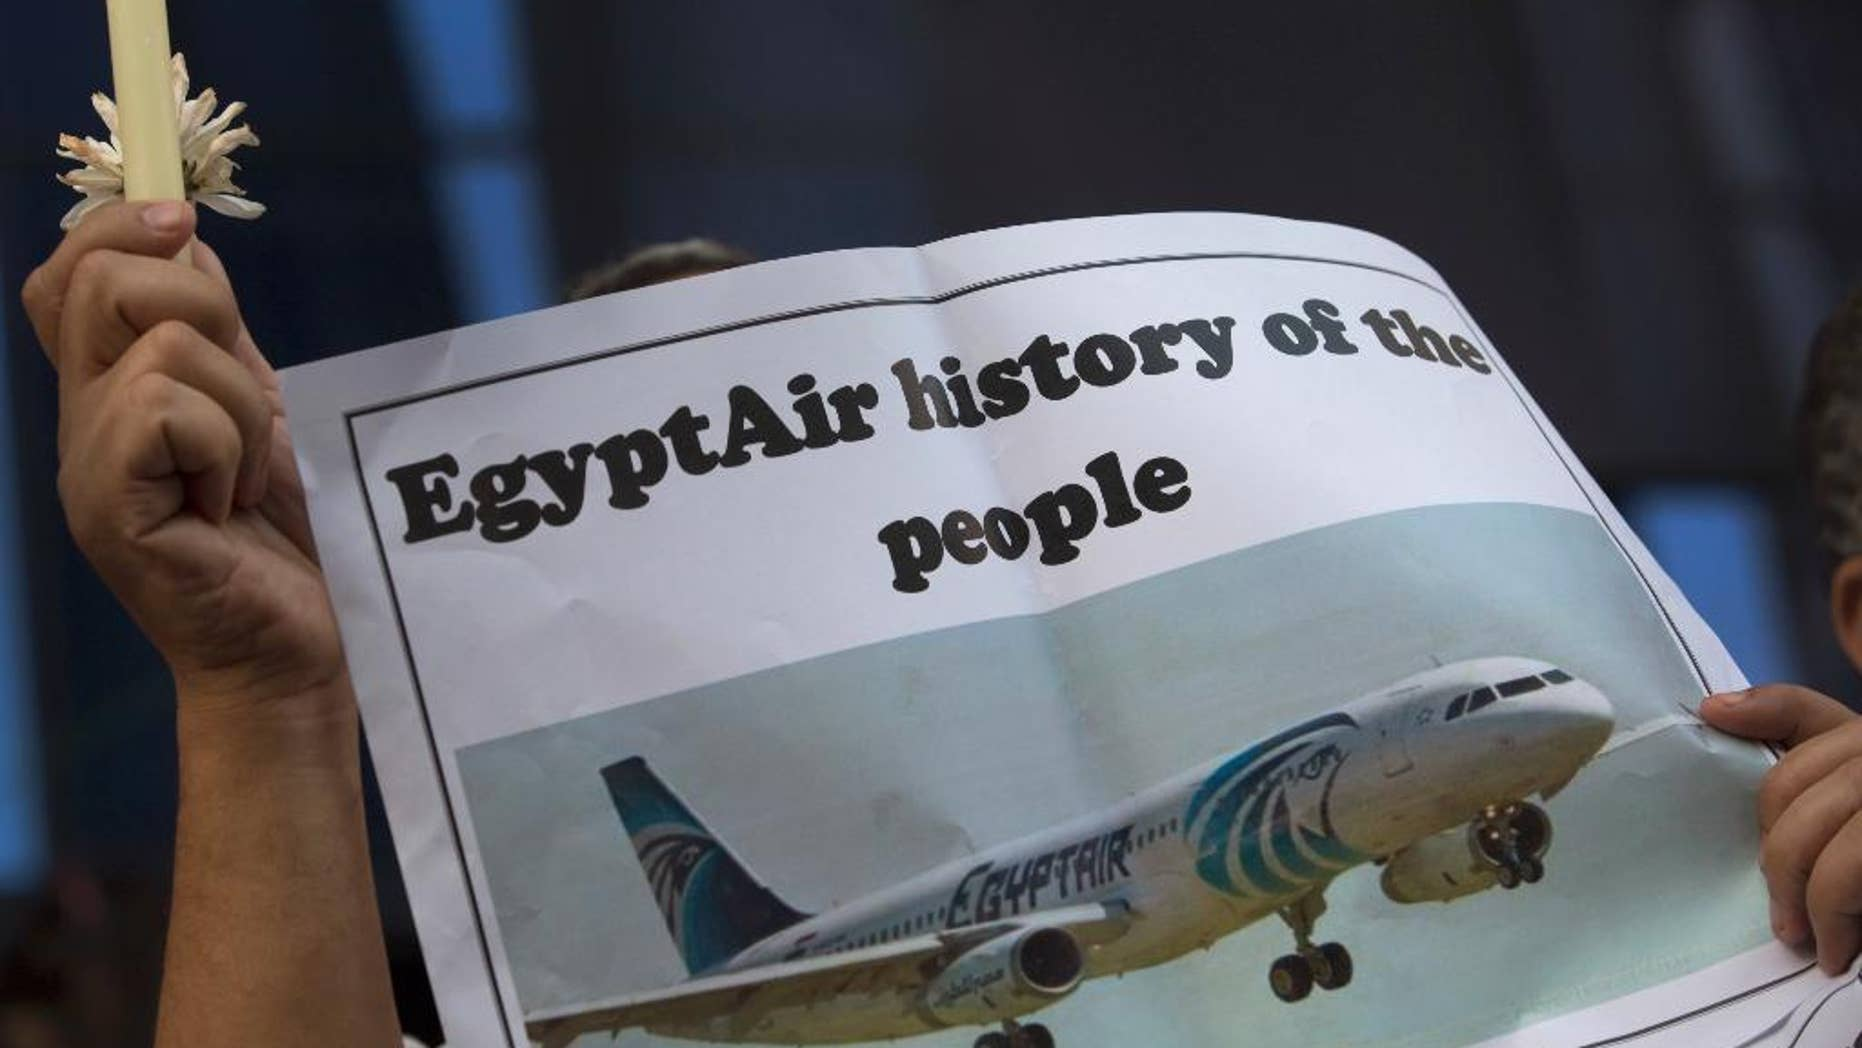 FILE - In this May 24, 2016 file photo, an Egyptian journalist holds a candle and a poster supporting EgyptAir during a candlelight vigil for the victims of EgyptAir flight 804 in front of the Journalists' Syndicate in Cairo, Egypt. Egypt on Wednesday, June 15, 2016, said that it spotted and obtained images from the wreckage of the EgyptAir plane flying from Paris to Cairo that crashed into the Mediterranean last month, killing all 66 people on board, according to a statement by the country's investigation committee.  (AP Photo/Amr Nabil, File)